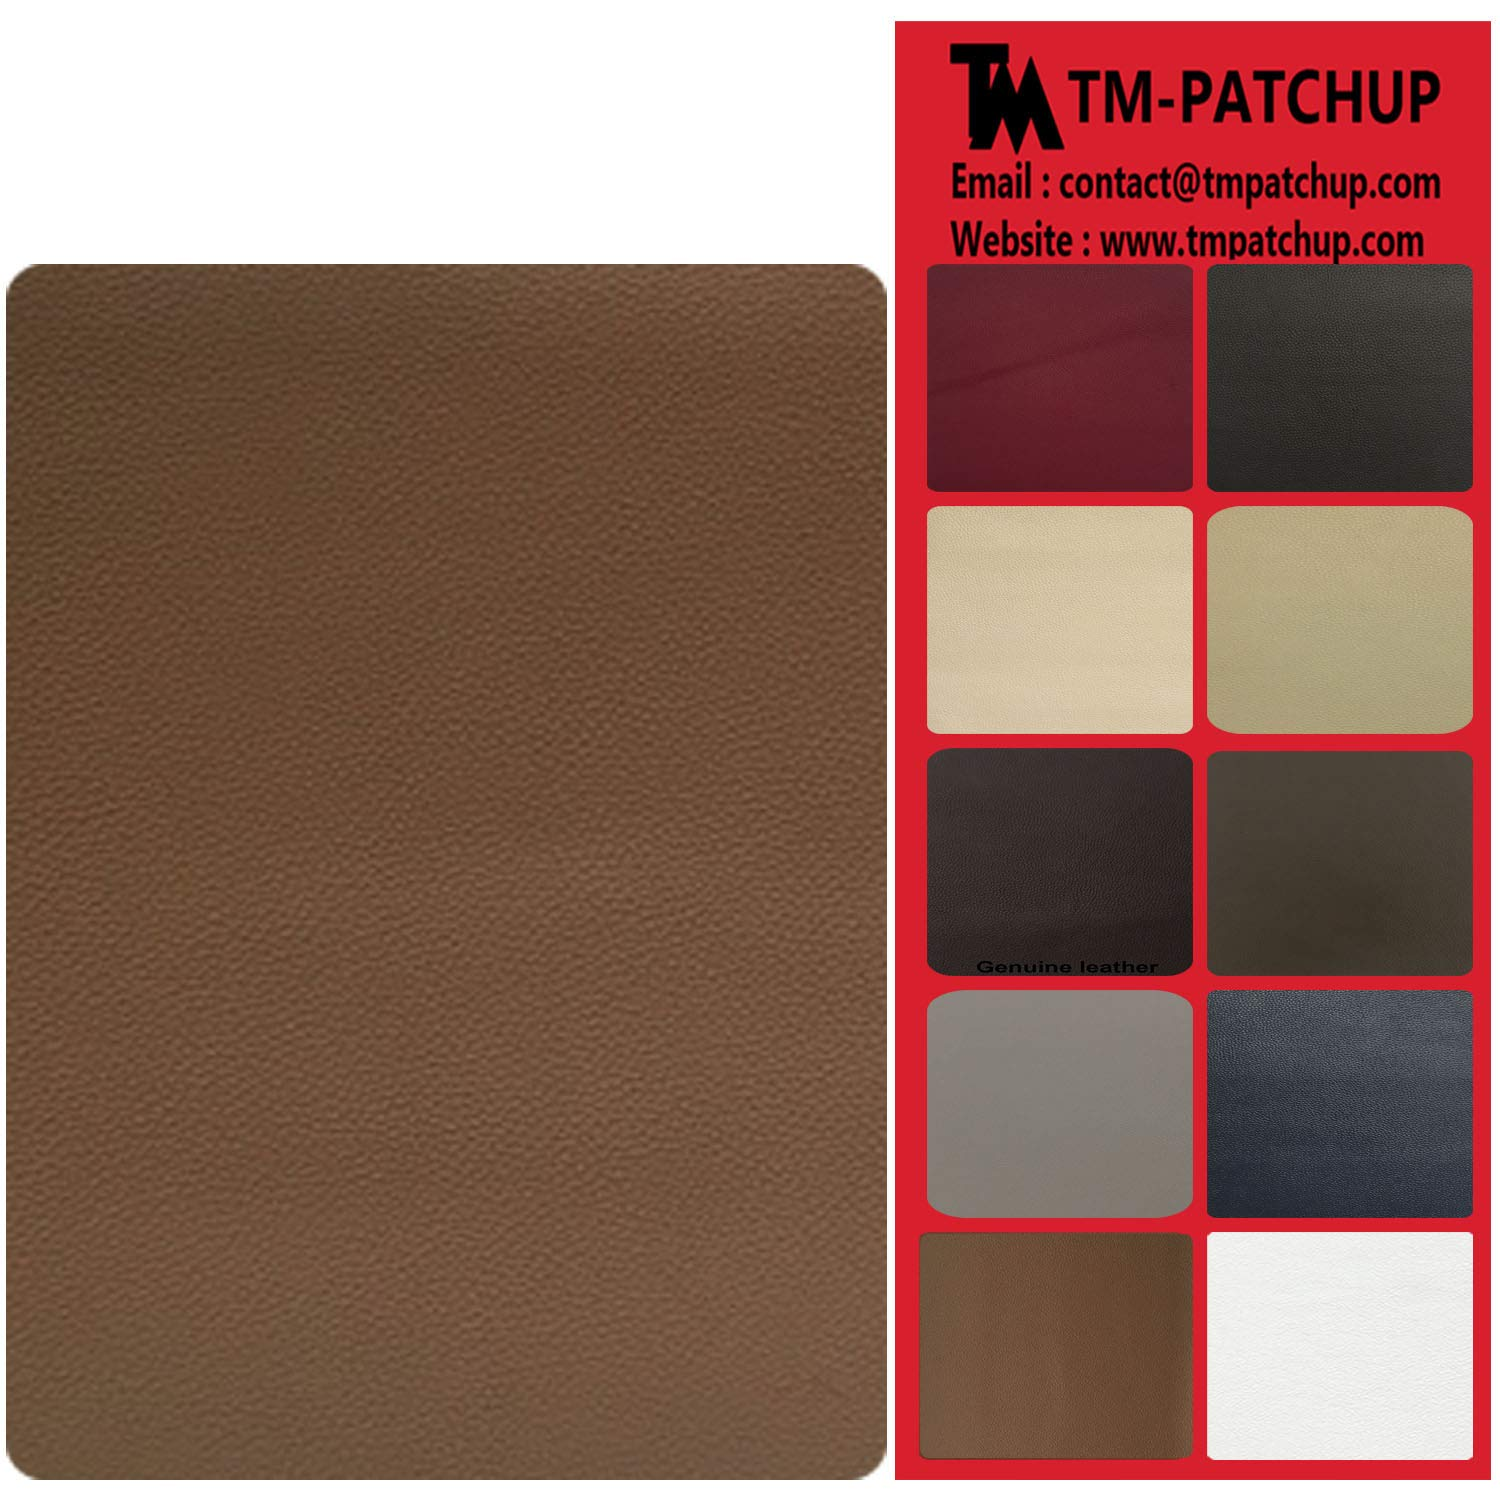 Leather and Vinyl Repair Patch by TMgroup, Genuine Faux Leather Repair Patch, Peel and Stick for Couch, Sofas, car Seats, Hand Bags,Furniture, Jackets, Large Size 8 x 11 inches (Beige)